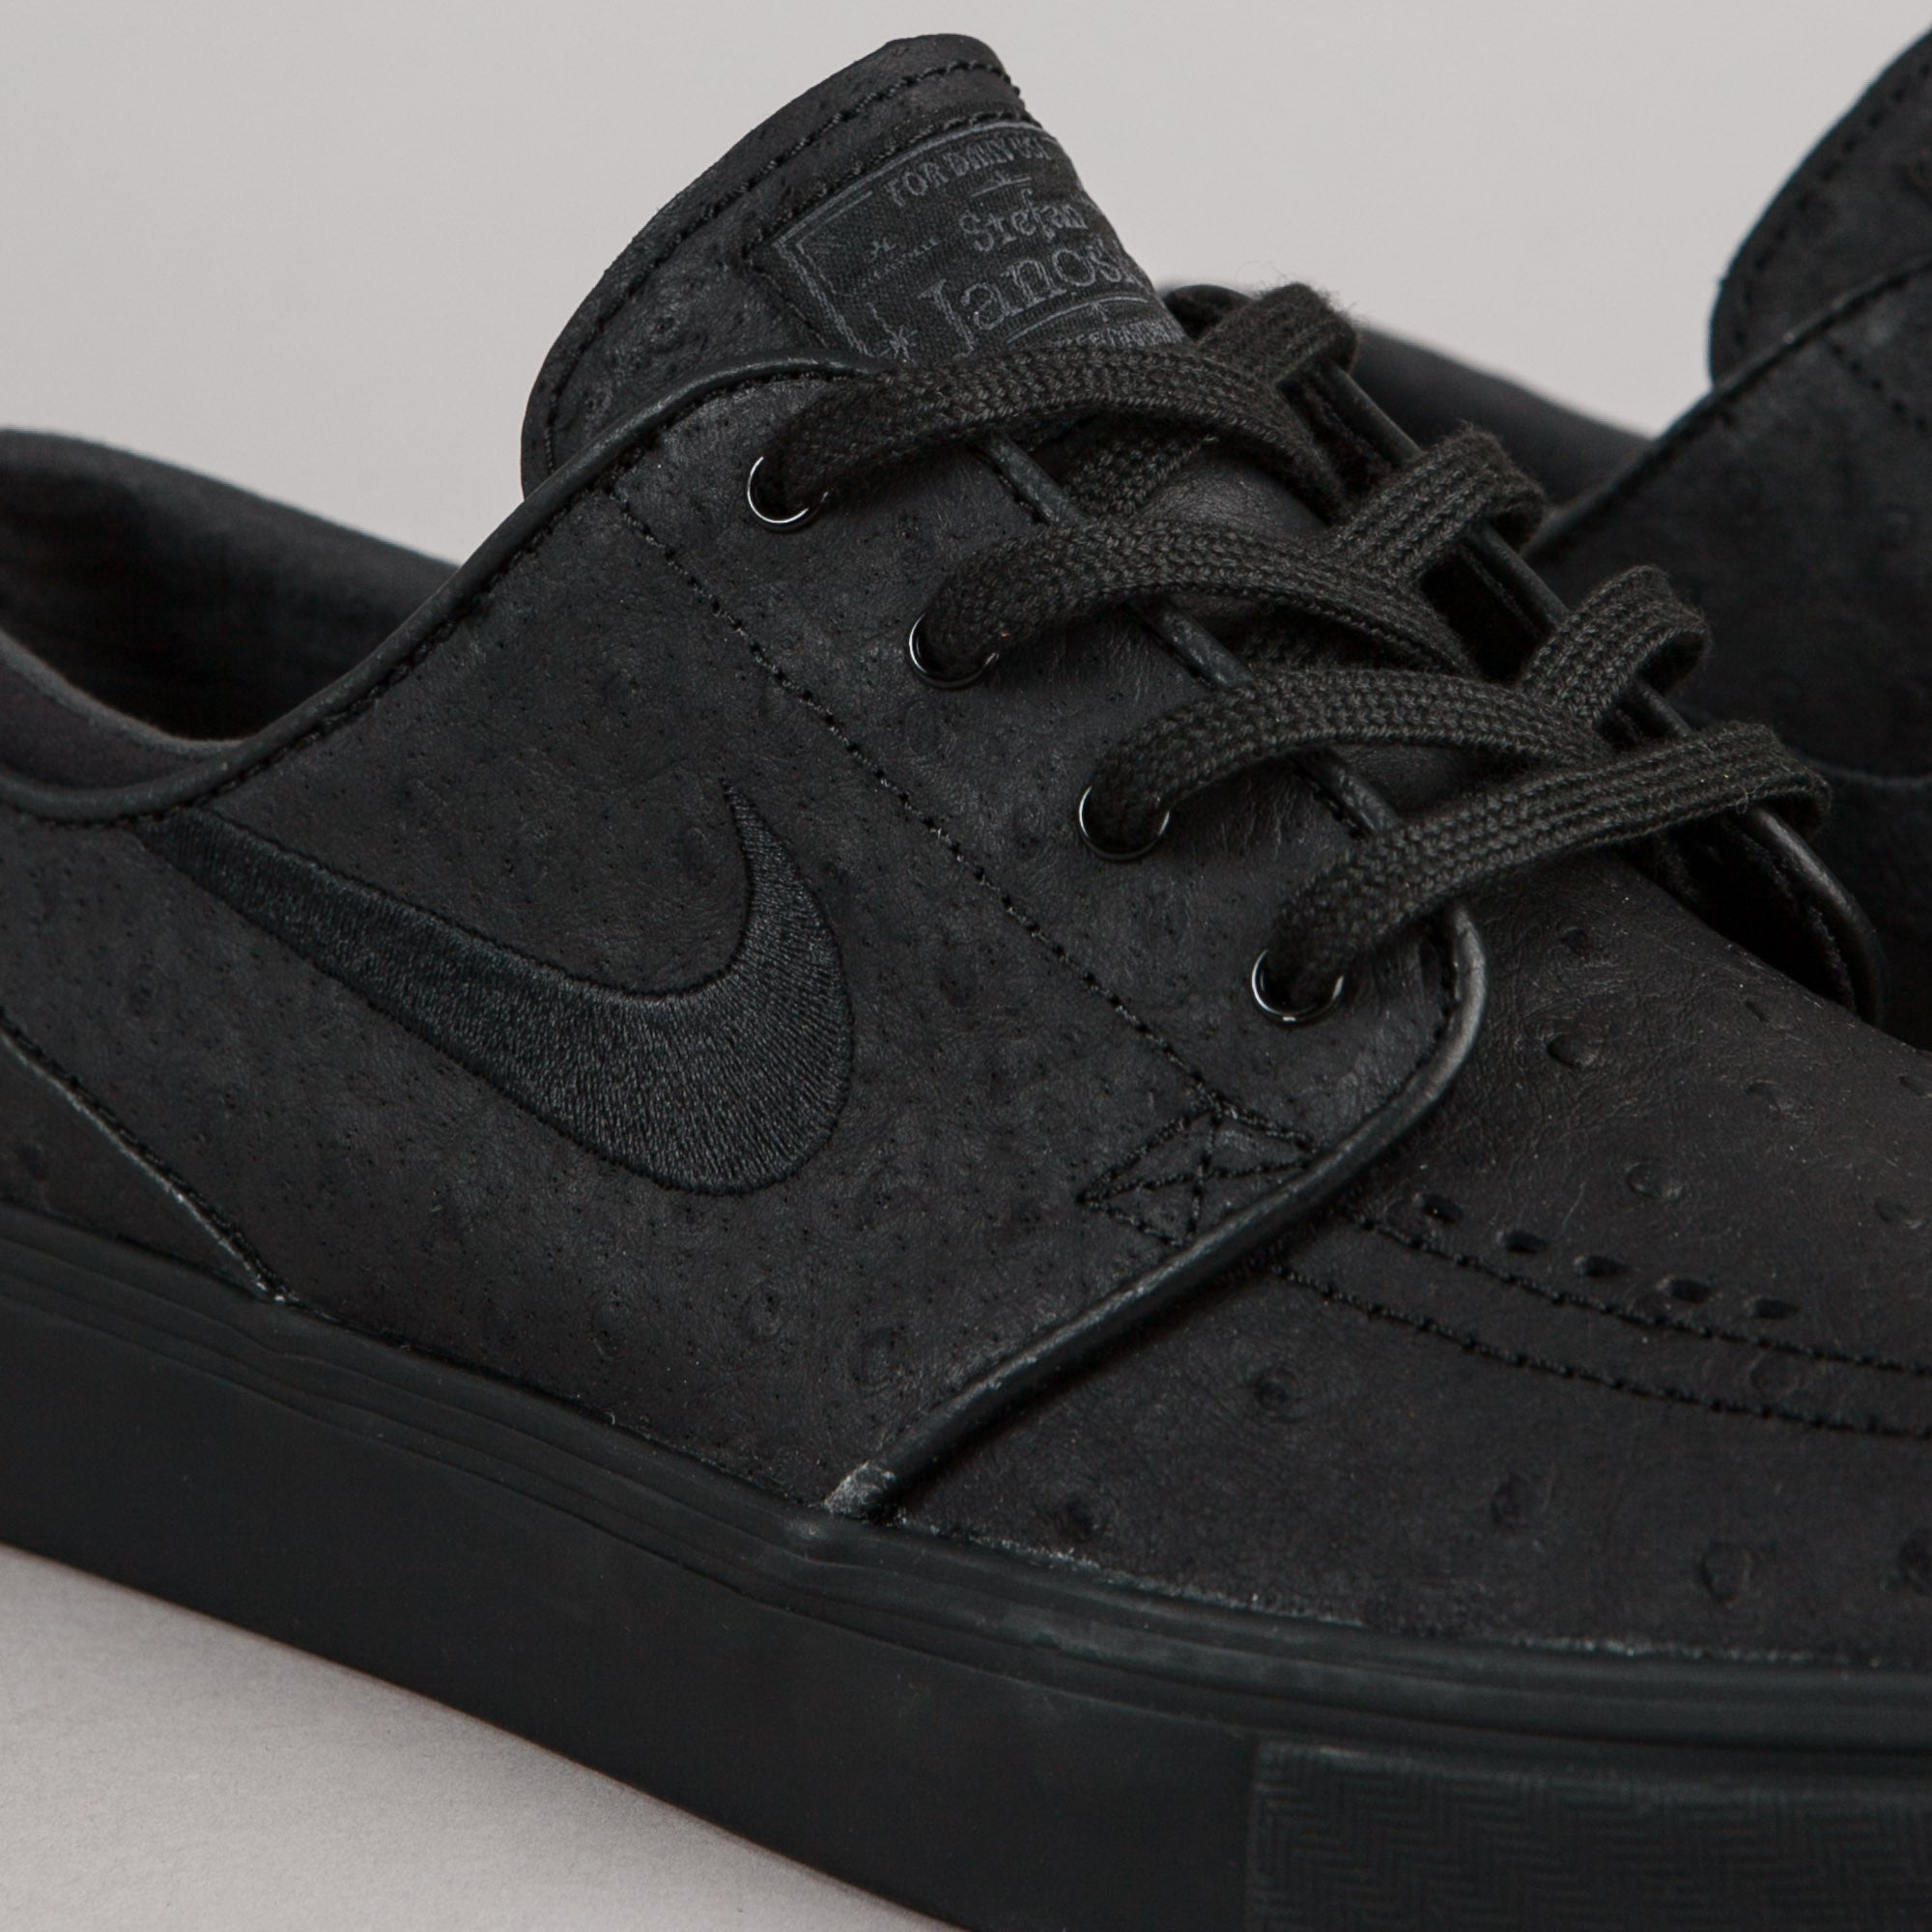 the best attitude 46d08 875c9 ... Nike SB Stefan Janoski Leather Shoes - Black   Black - Anthracite ...